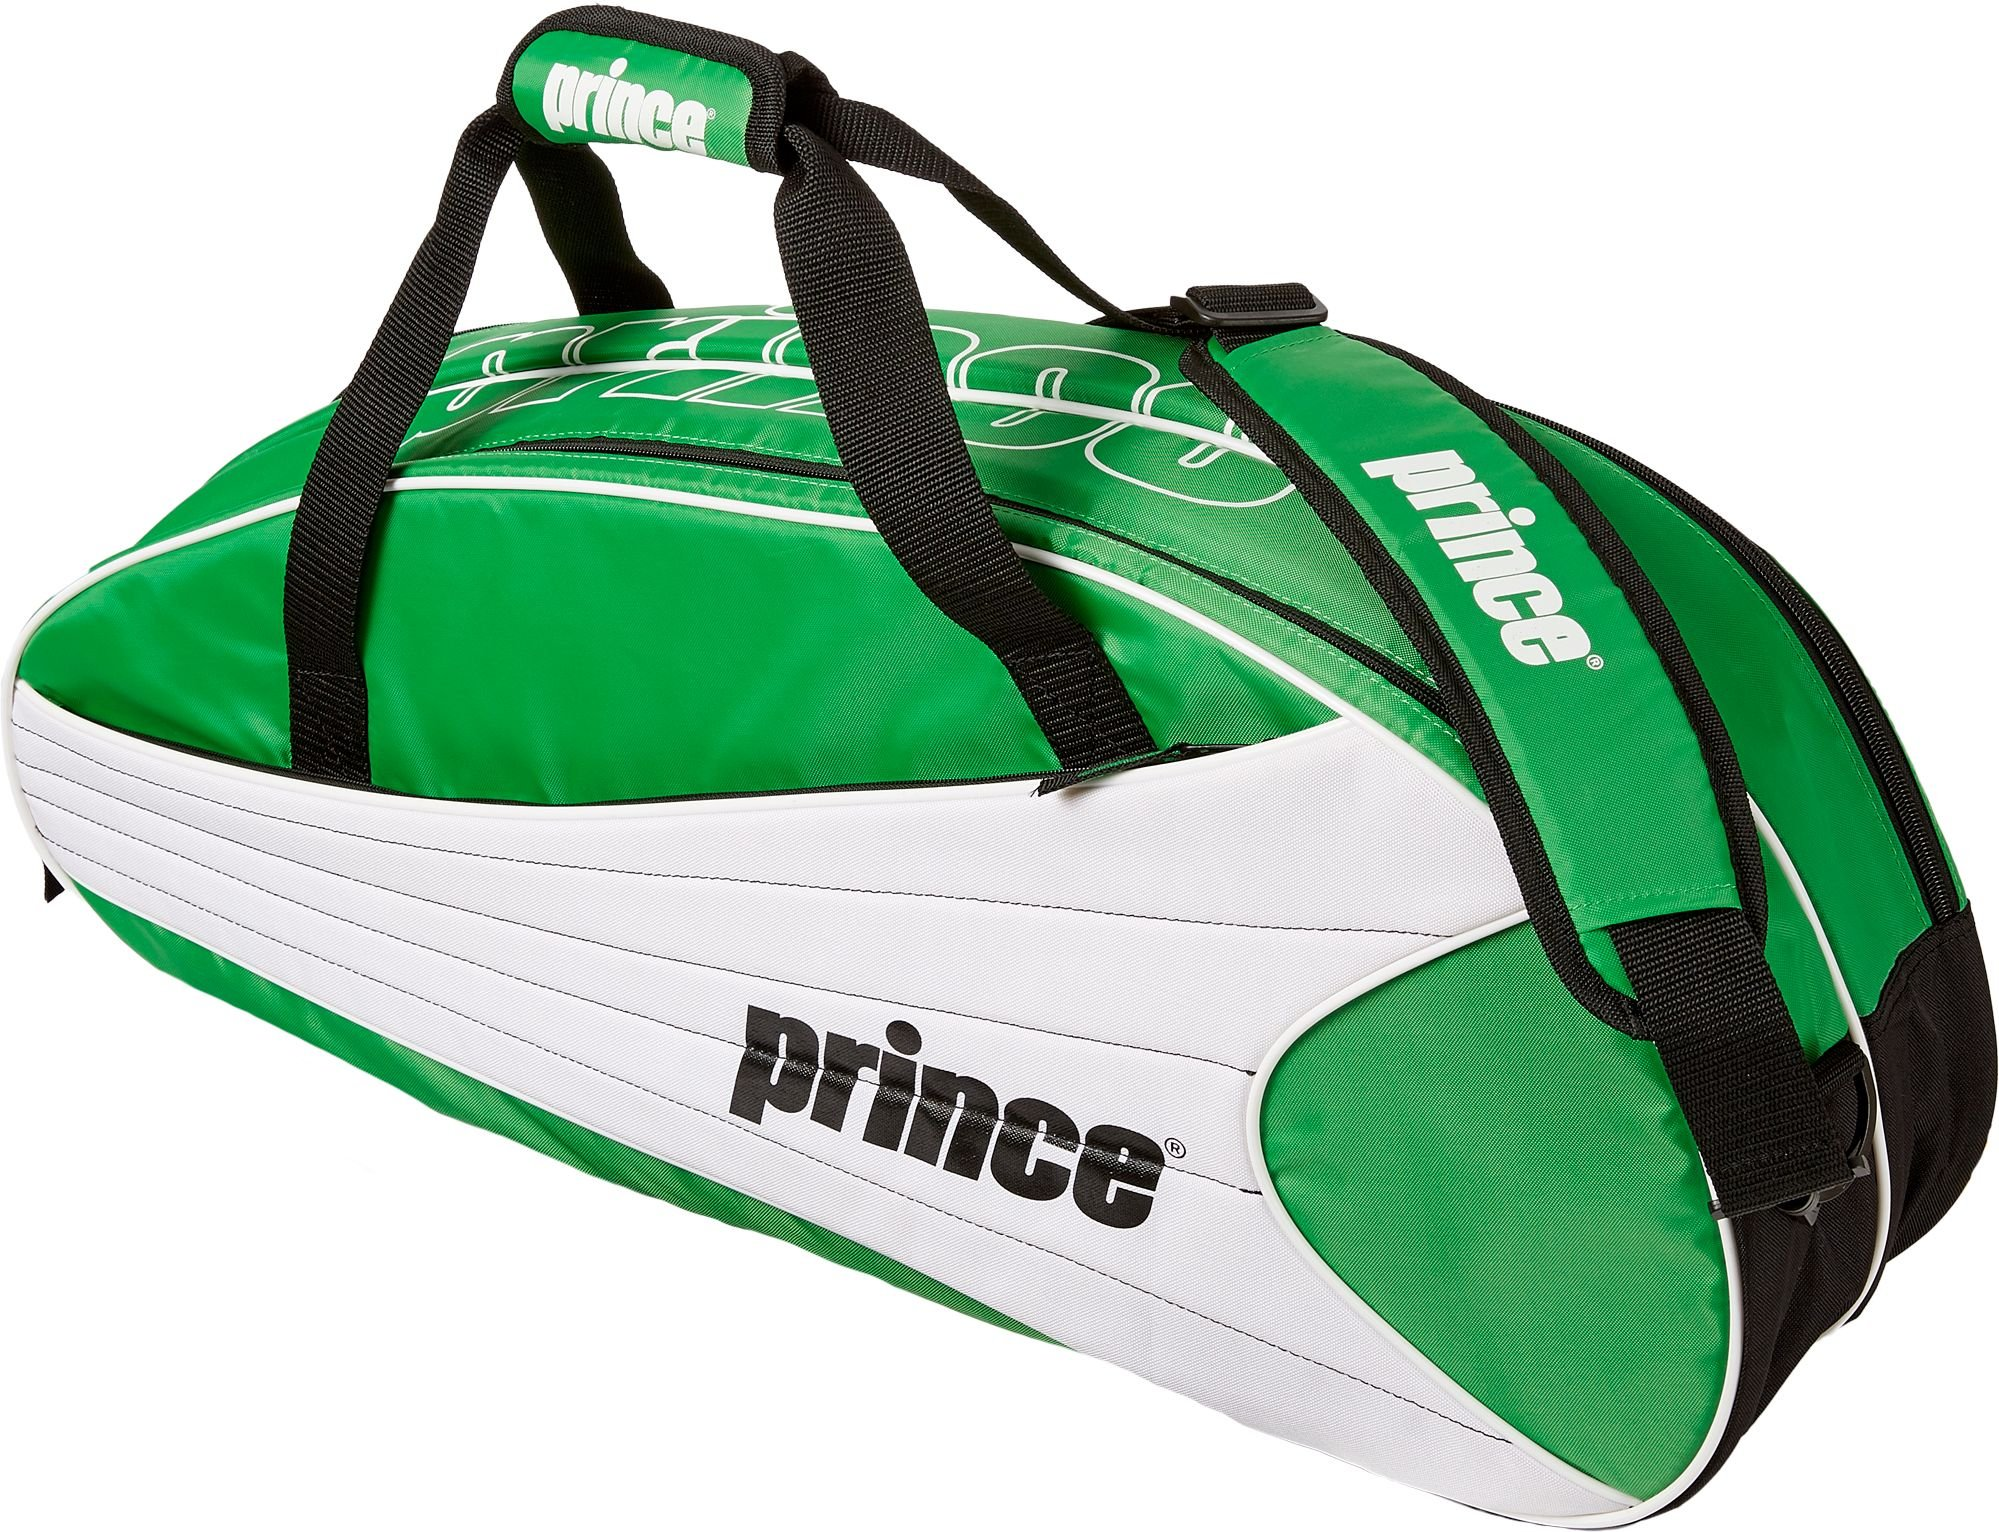 Prince Men's 6 Pack Tennis Racquet Bag